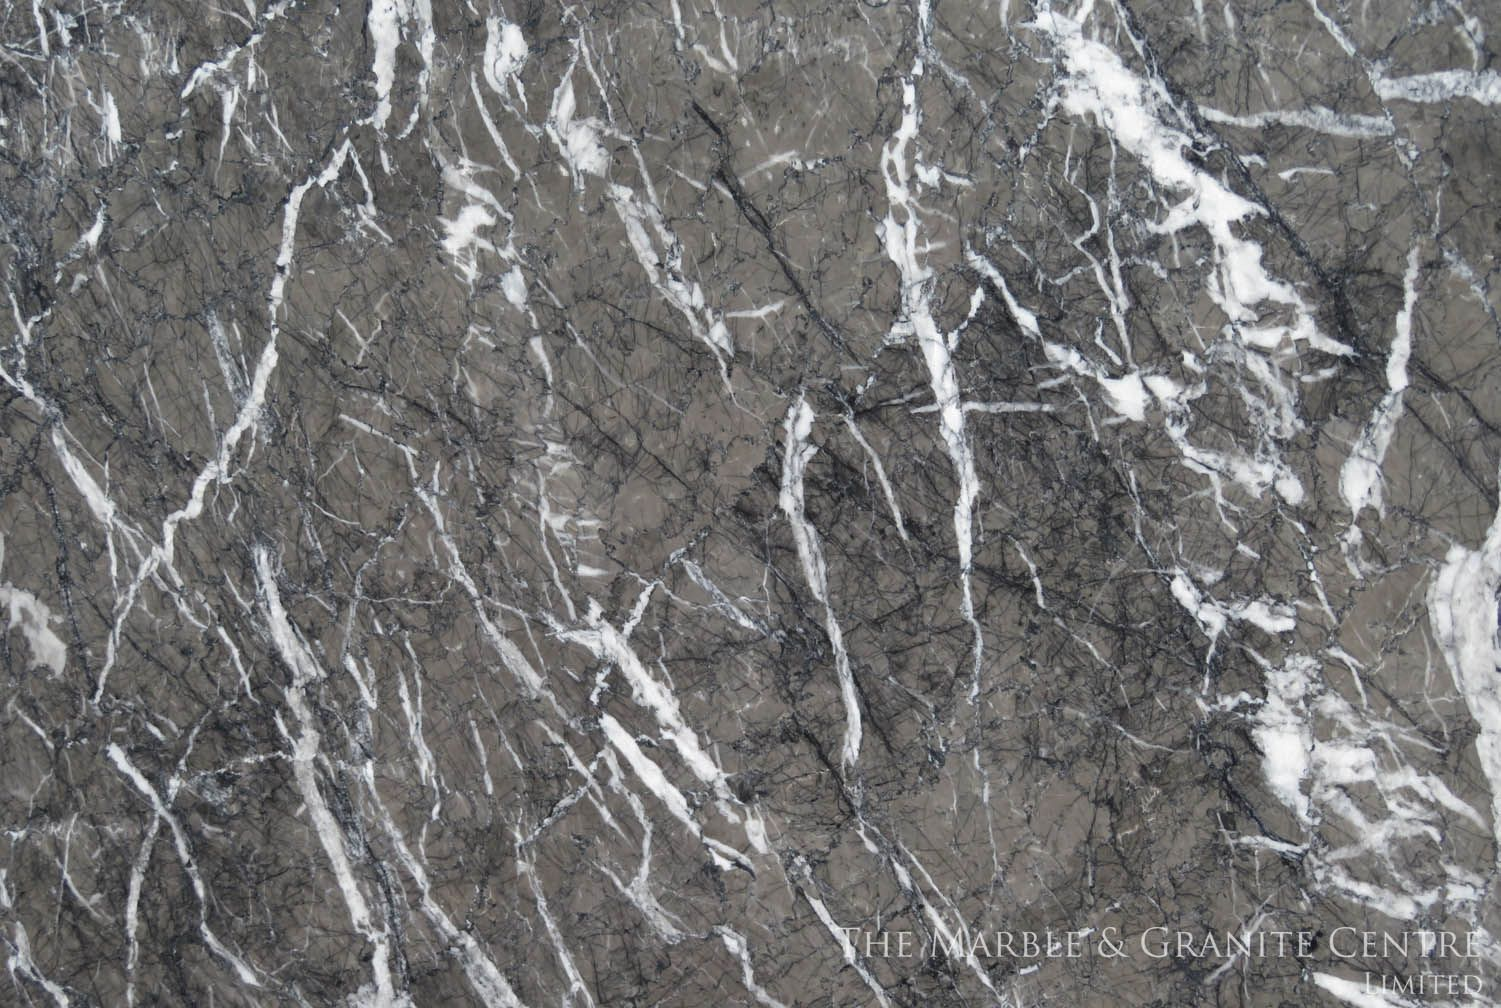 Grigio Carnico Polished Slabs Block No 12021 Https Www Themarbleandgranitecentre Co Uk Slabview Id 2397 Marble Granite Materials And Textures Stone Slab